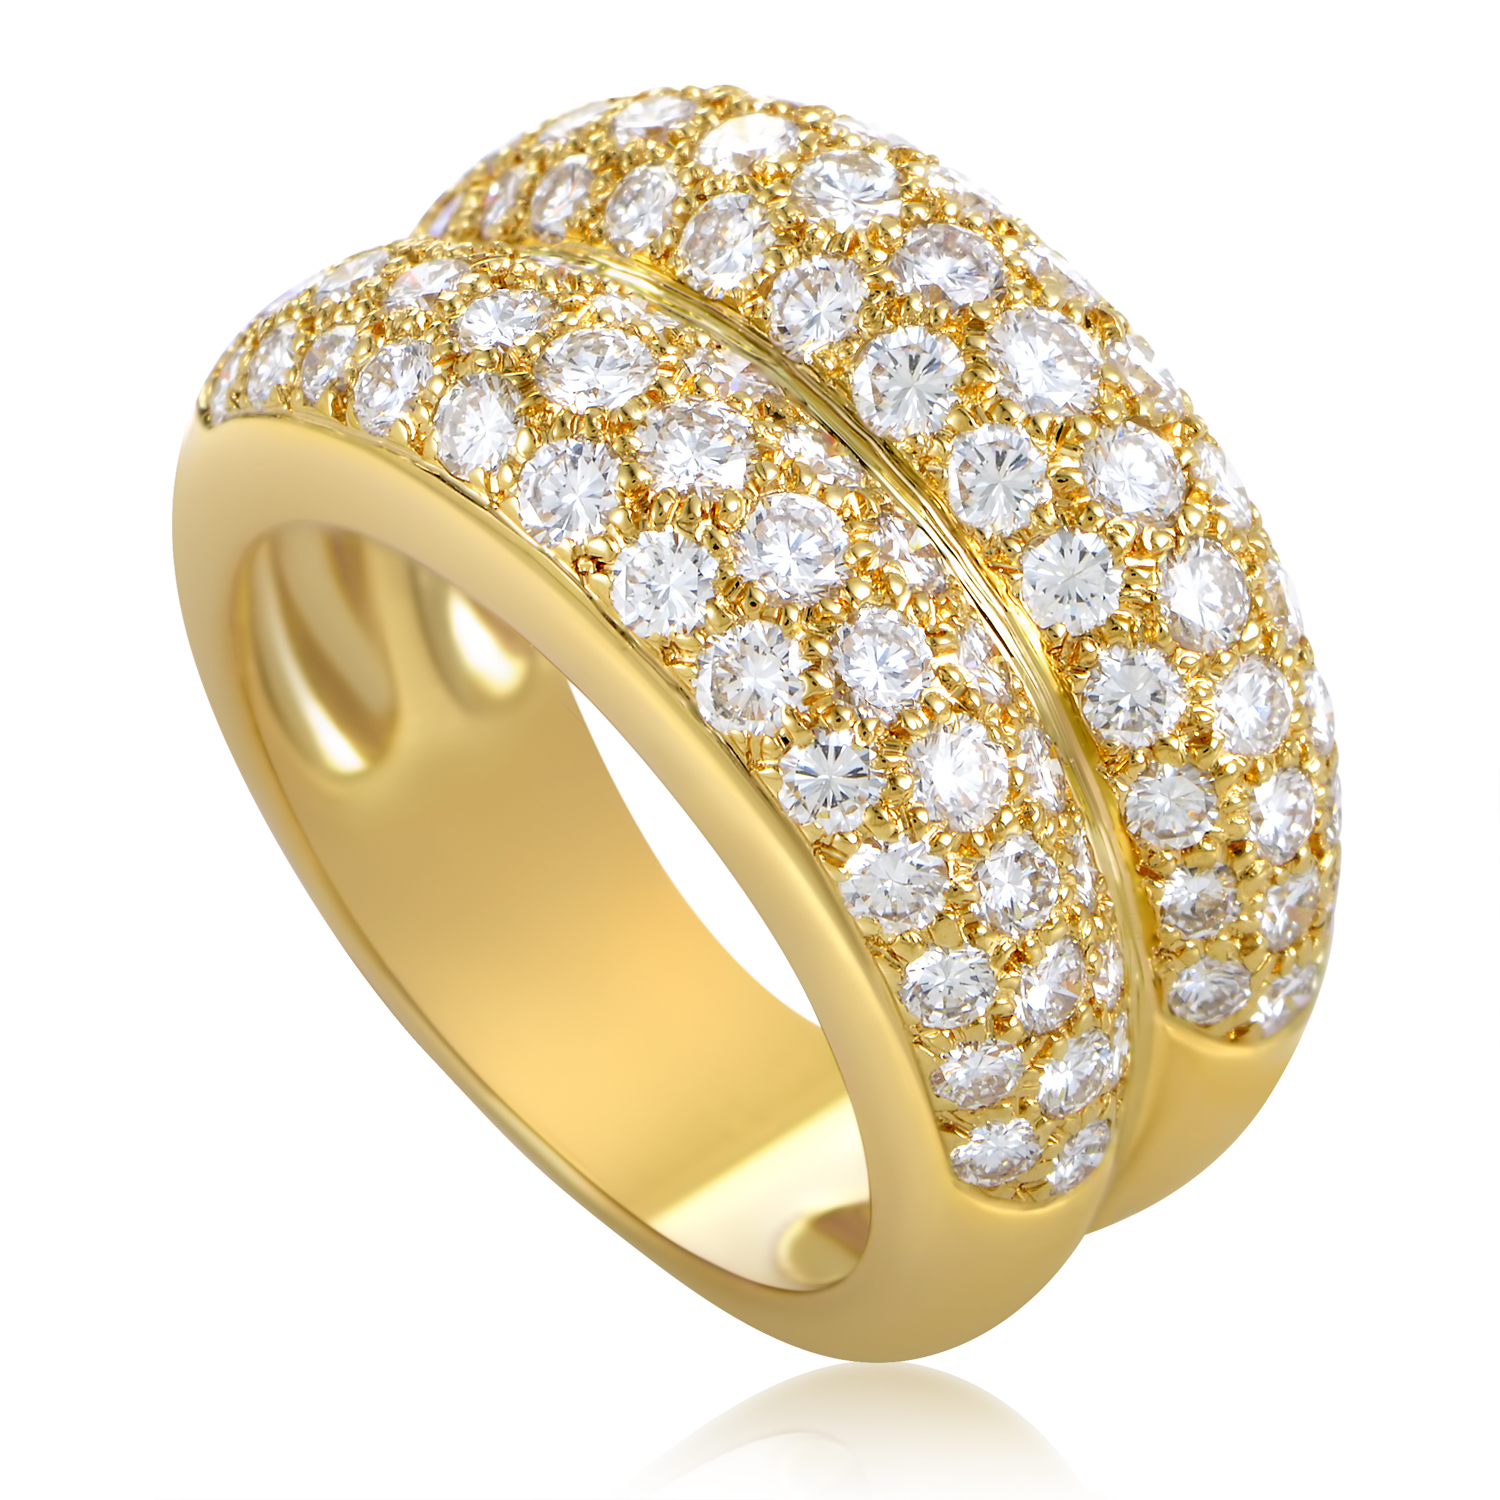 Cartier Women's 18K Yellow Gold Diamond Pave Double Band Ring